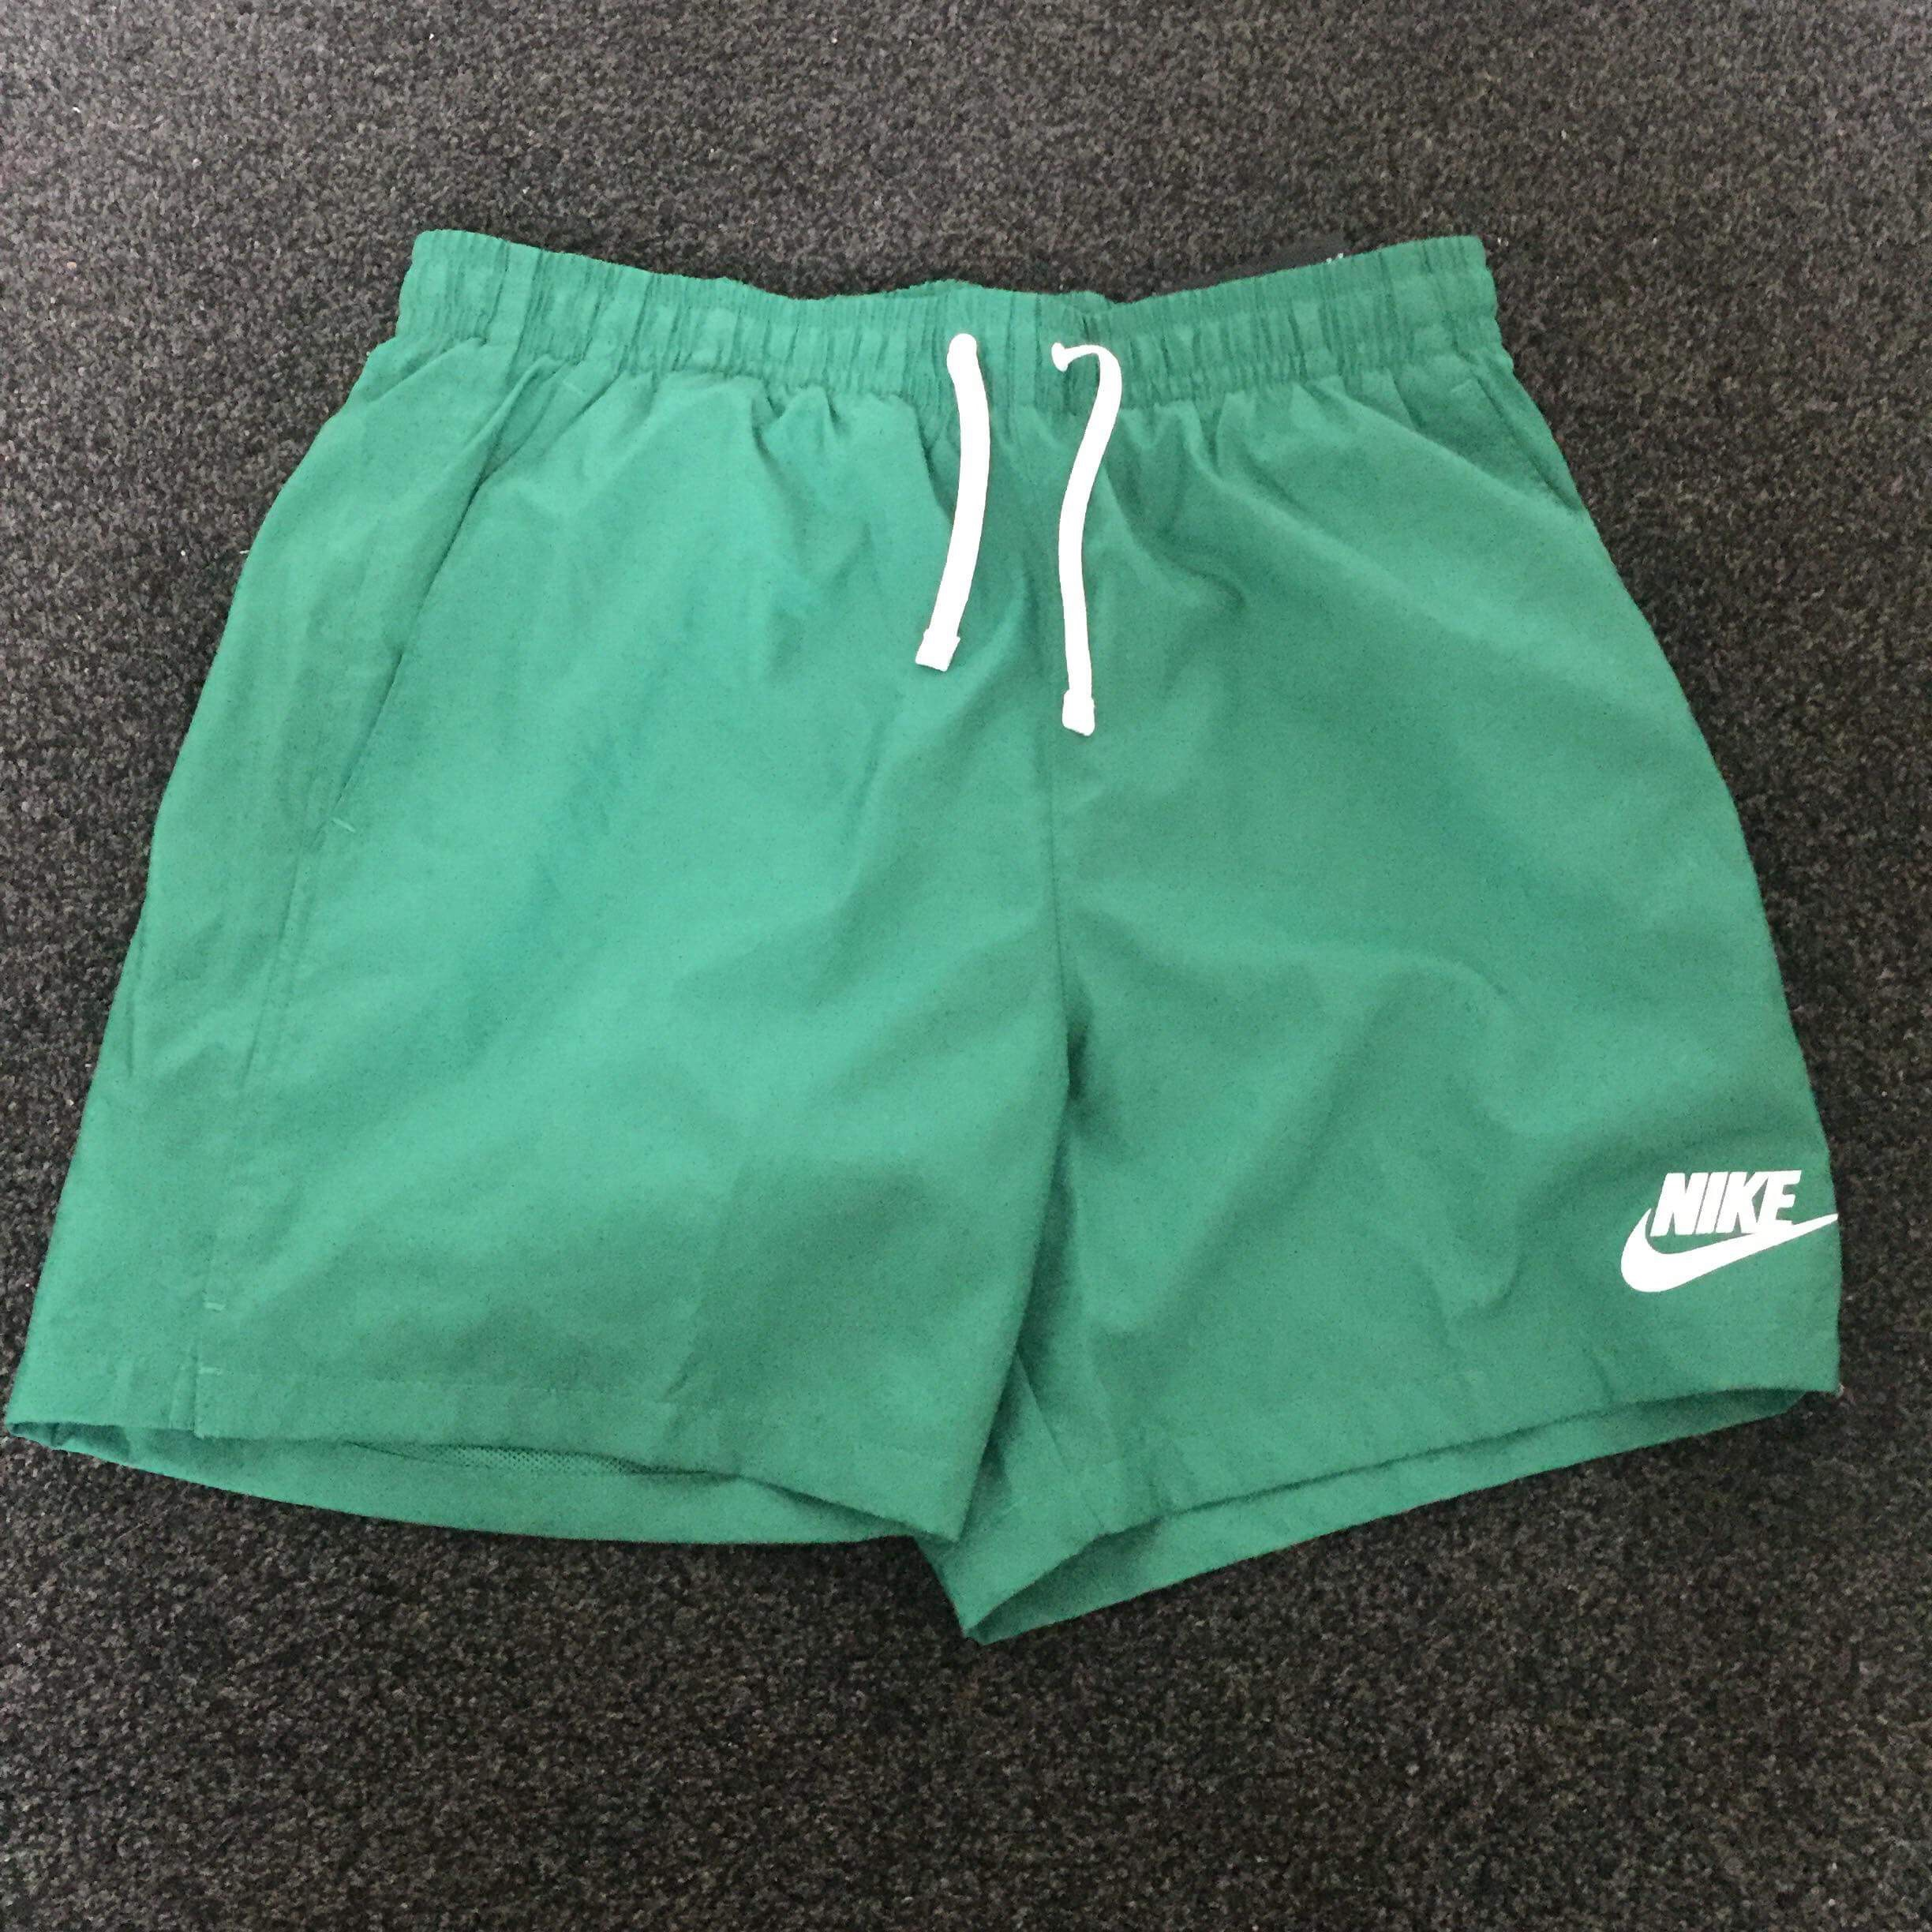 Men's Nike woven shorts in green! Perfect for... - Depop